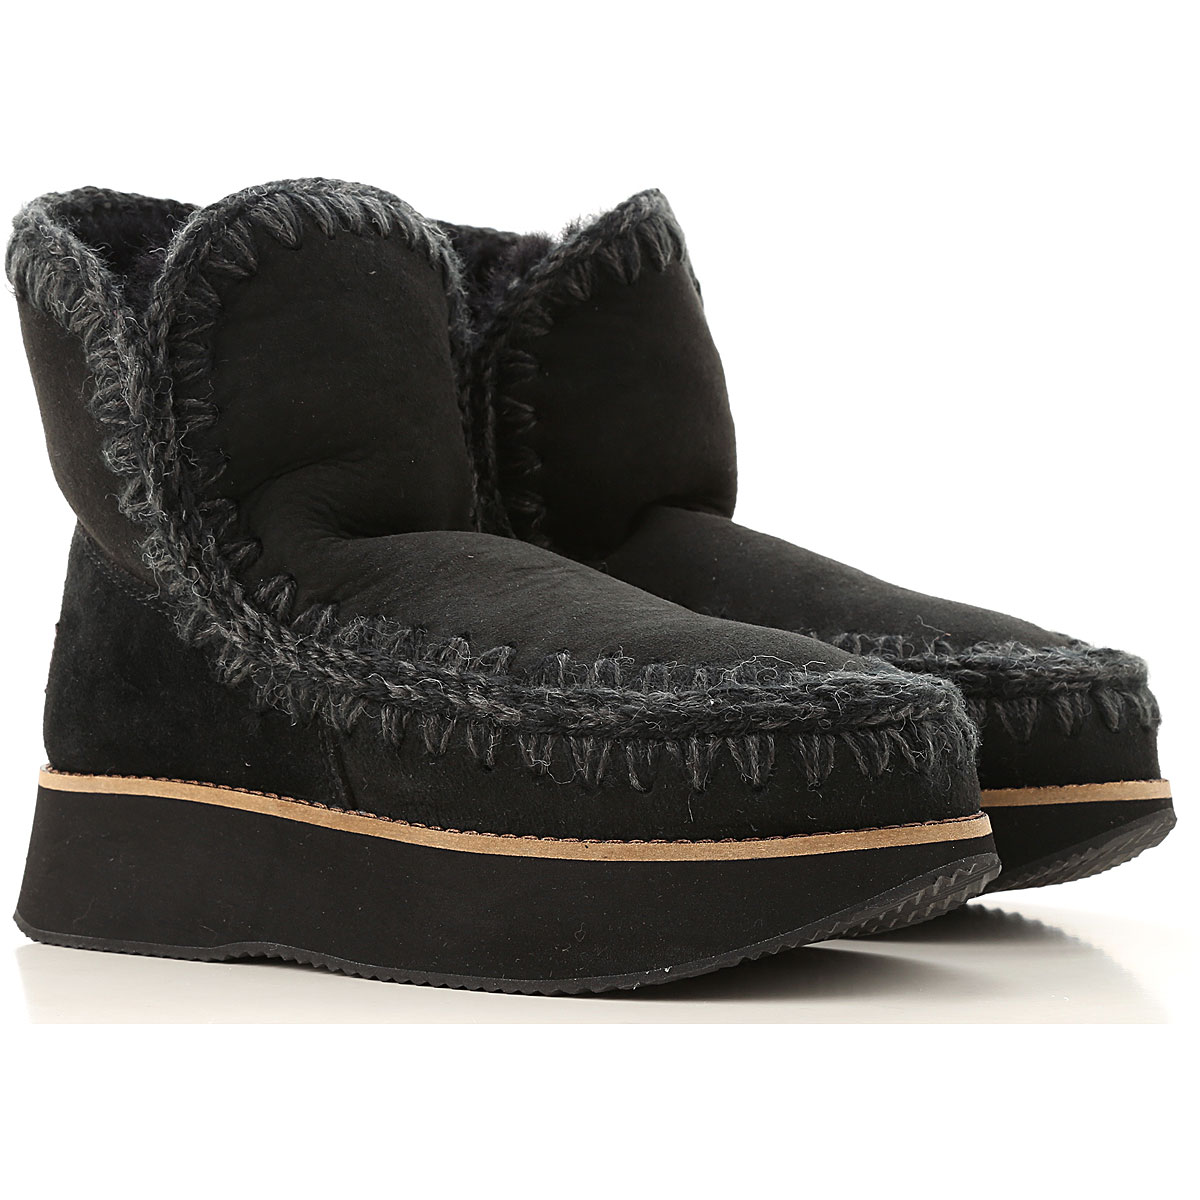 Mou Boots for Women, Booties On Sale, Black, Suede leather, 2019, EUR 36 - UK 3 - USA 5.5 EUR 40 - UK 7 - USA 9.5